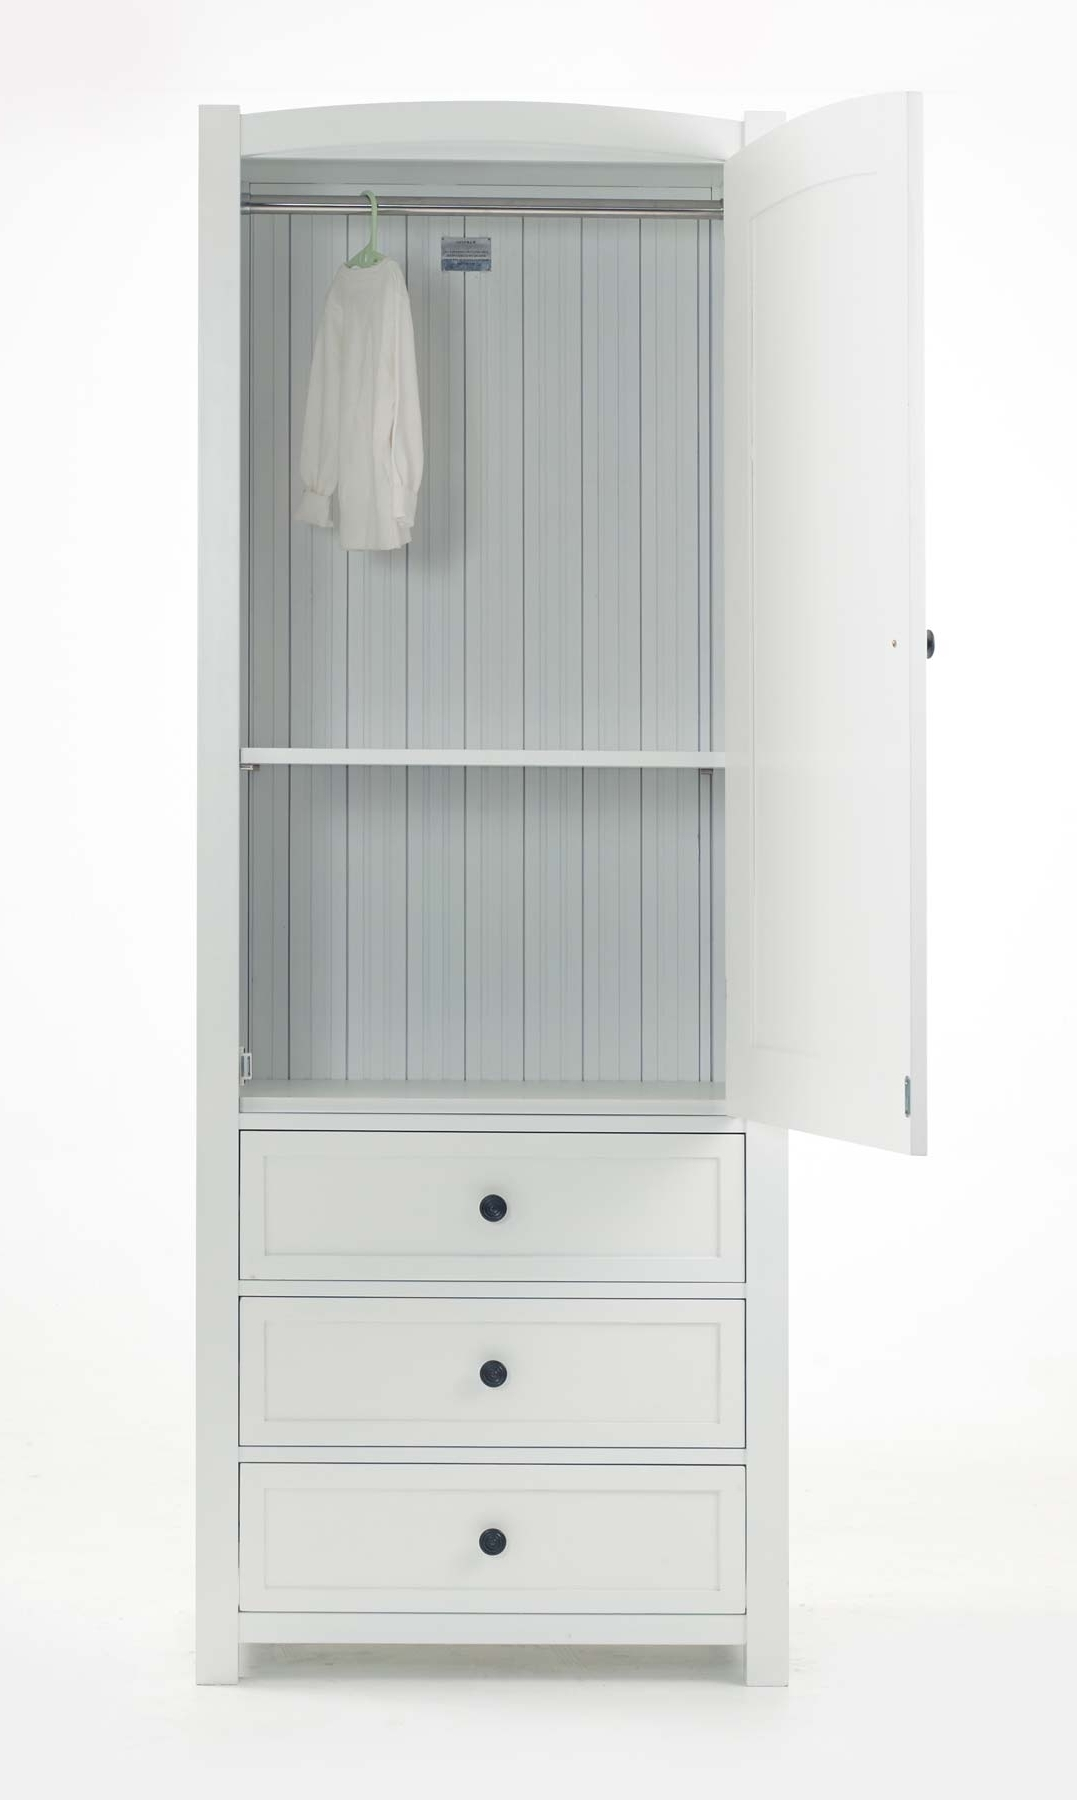 2017 Wardrobes With Drawers And Shelves Throughout Tall Single Wardrobe With Drawers • Drawer Ideas (View 2 of 15)